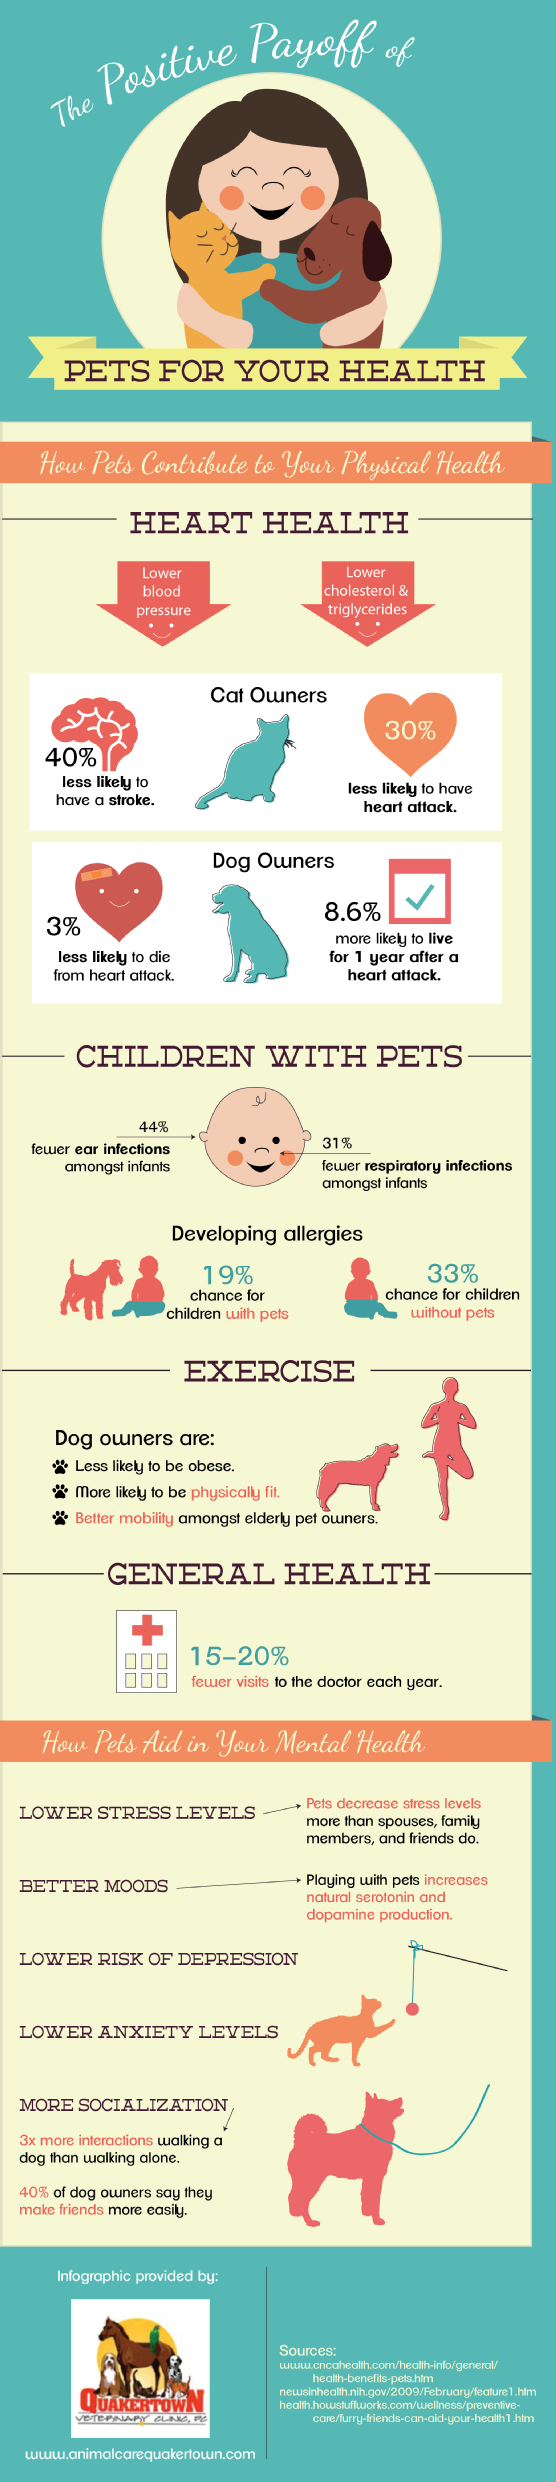 Amazing Health Benefits Of Being A Pet Owner Infographic